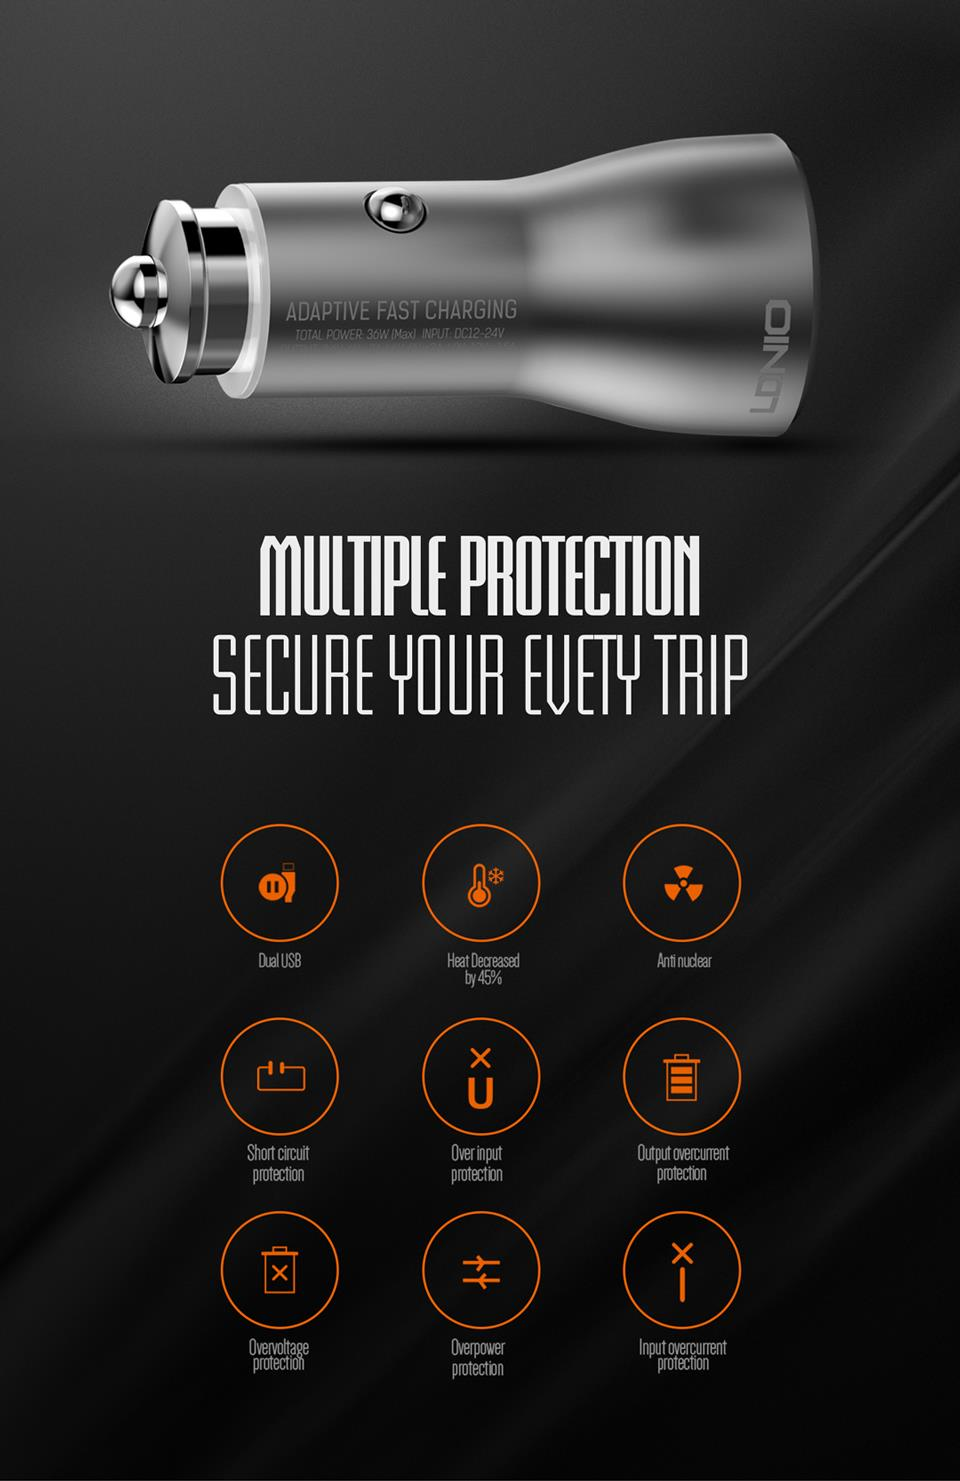 LDNIO C407Q Dual 2 Double Qualcomm Quick Charge QC 3.0 USB Car Charger